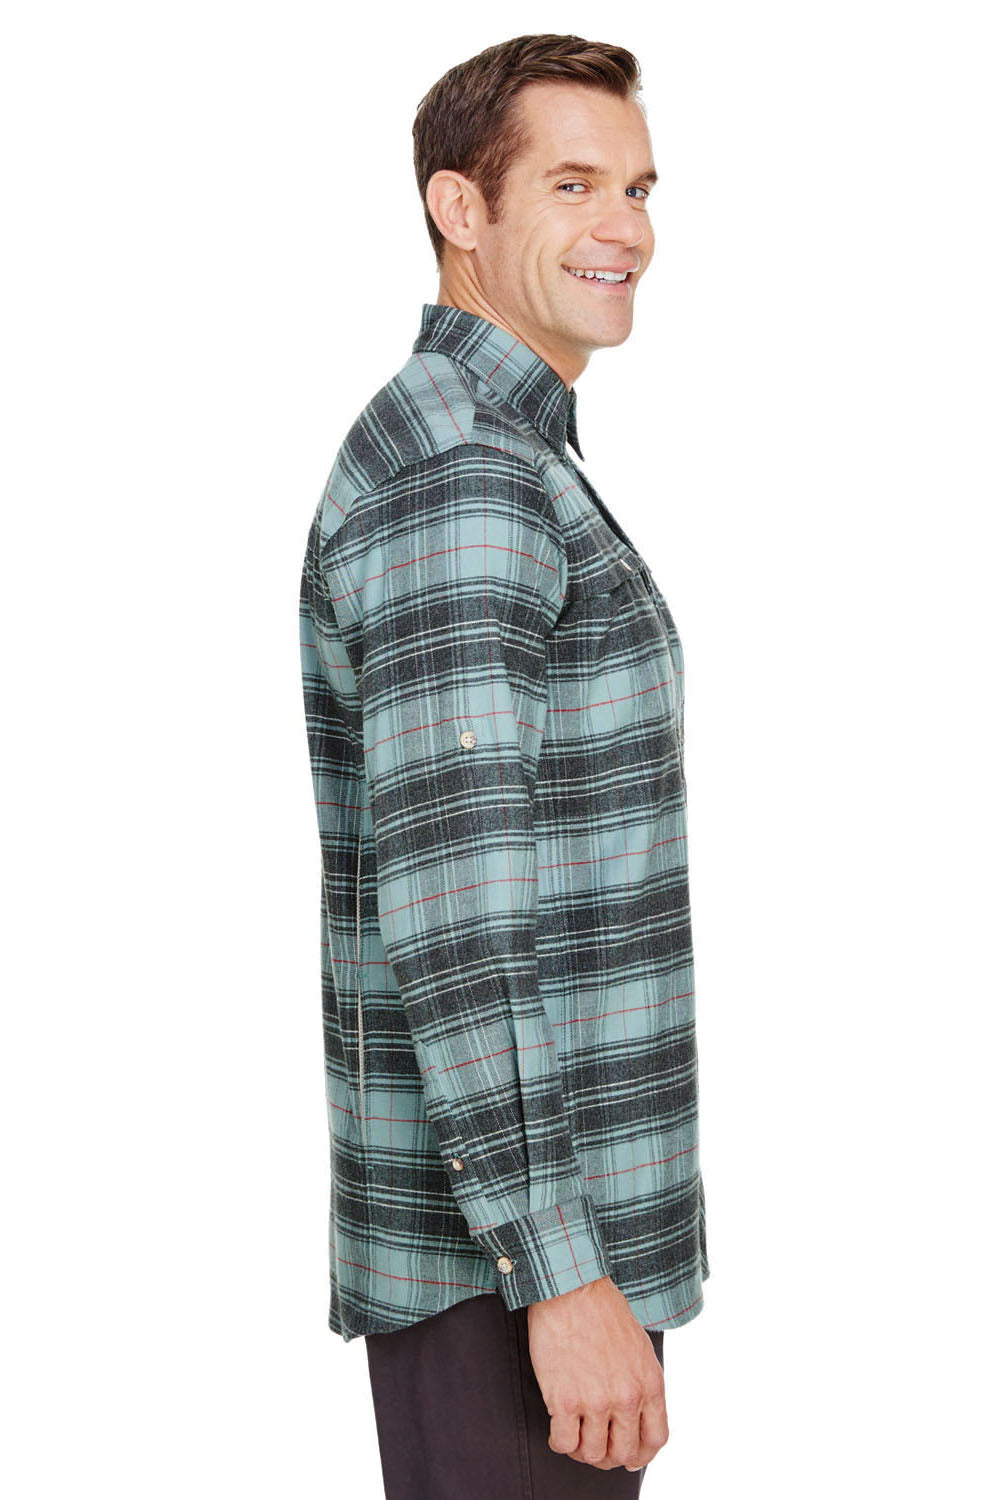 Backpacker BP7091 Mens Stretch Flannel Long Sleeve Button Down Shirt w/ Double Pockets Teal Blue Side